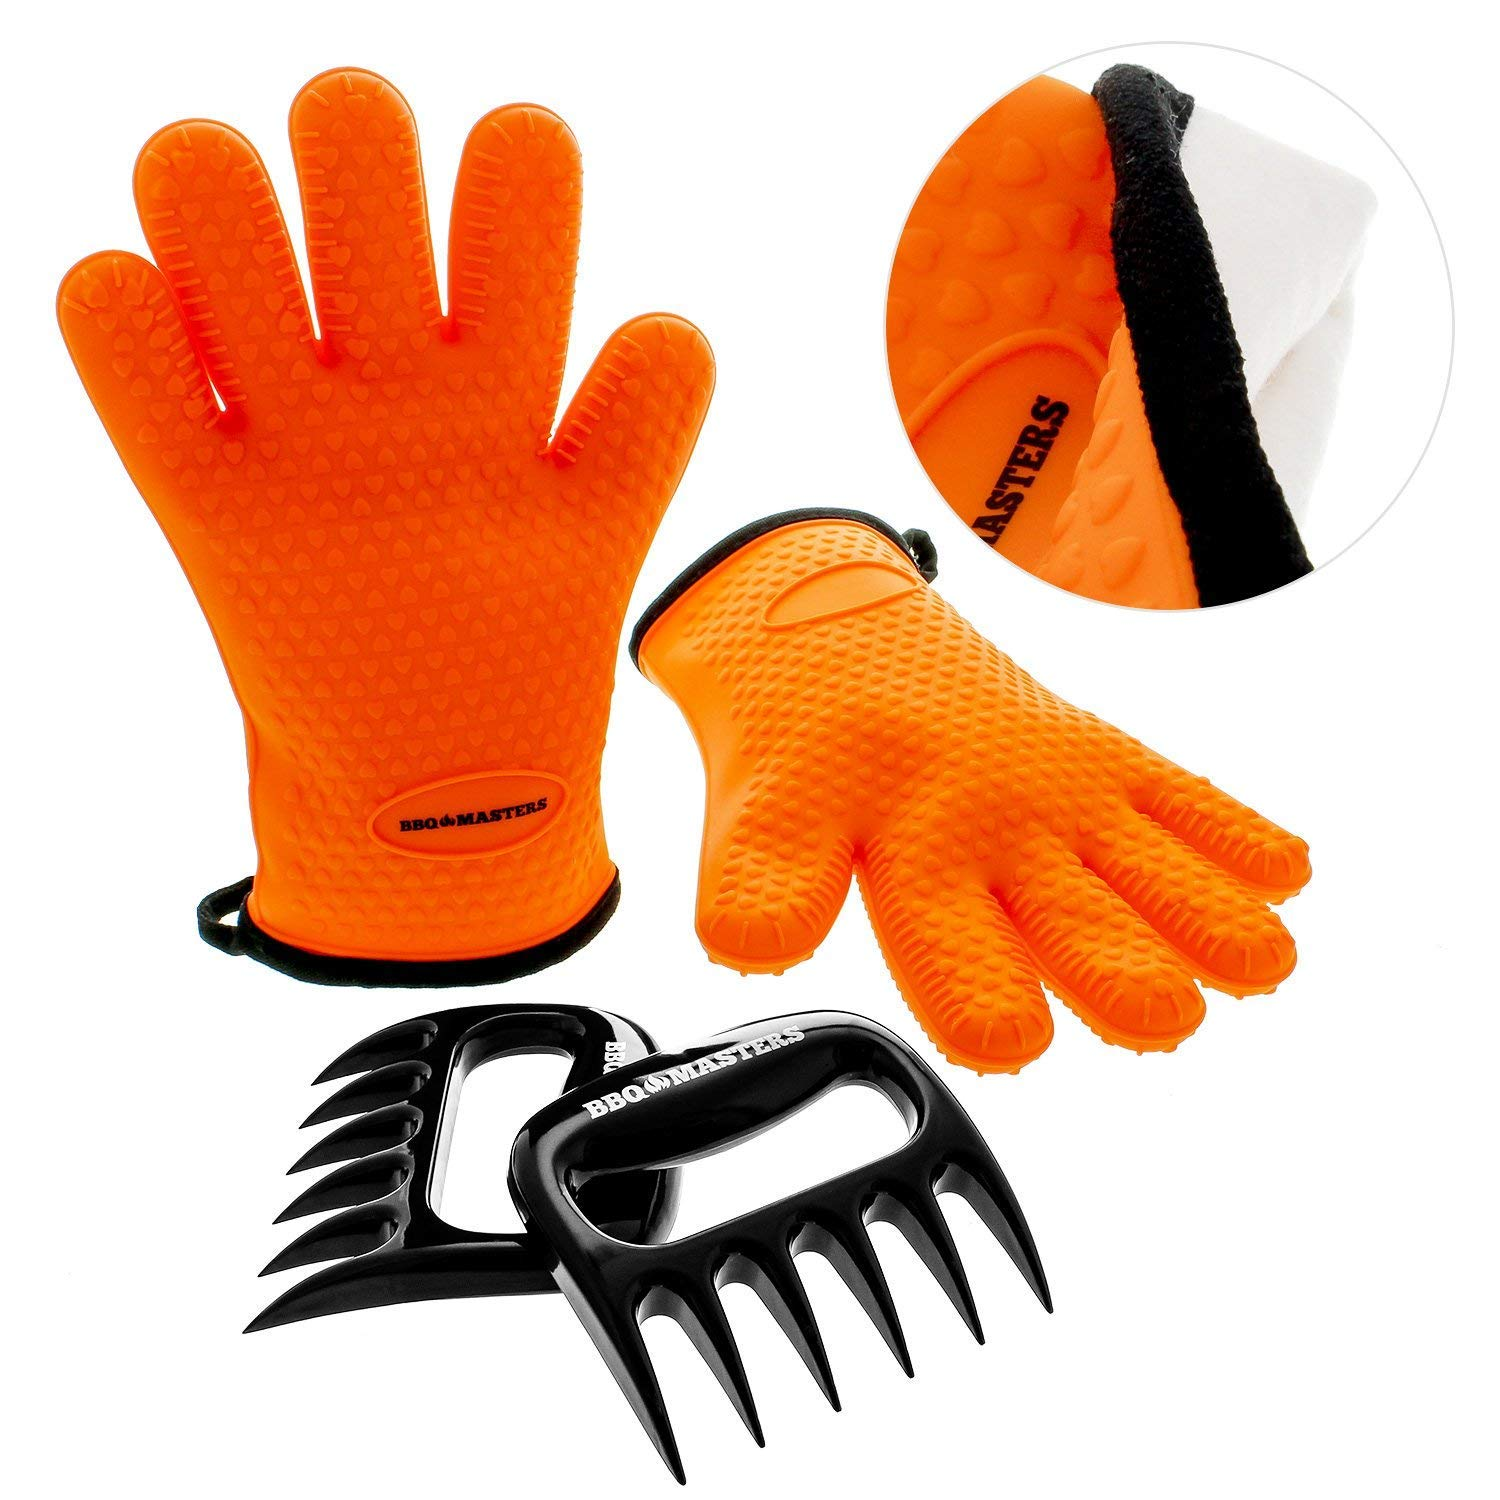 BBQ Master Heat Resistant Silicone Cooking Gloves & Meat Claws Combo Set - Safe Protective Insulated Cloth Lining Kitchen Oven Mitts for Baking, Handling Hot Pots & Pans - Lift, Pull, Shred Pork, Beef